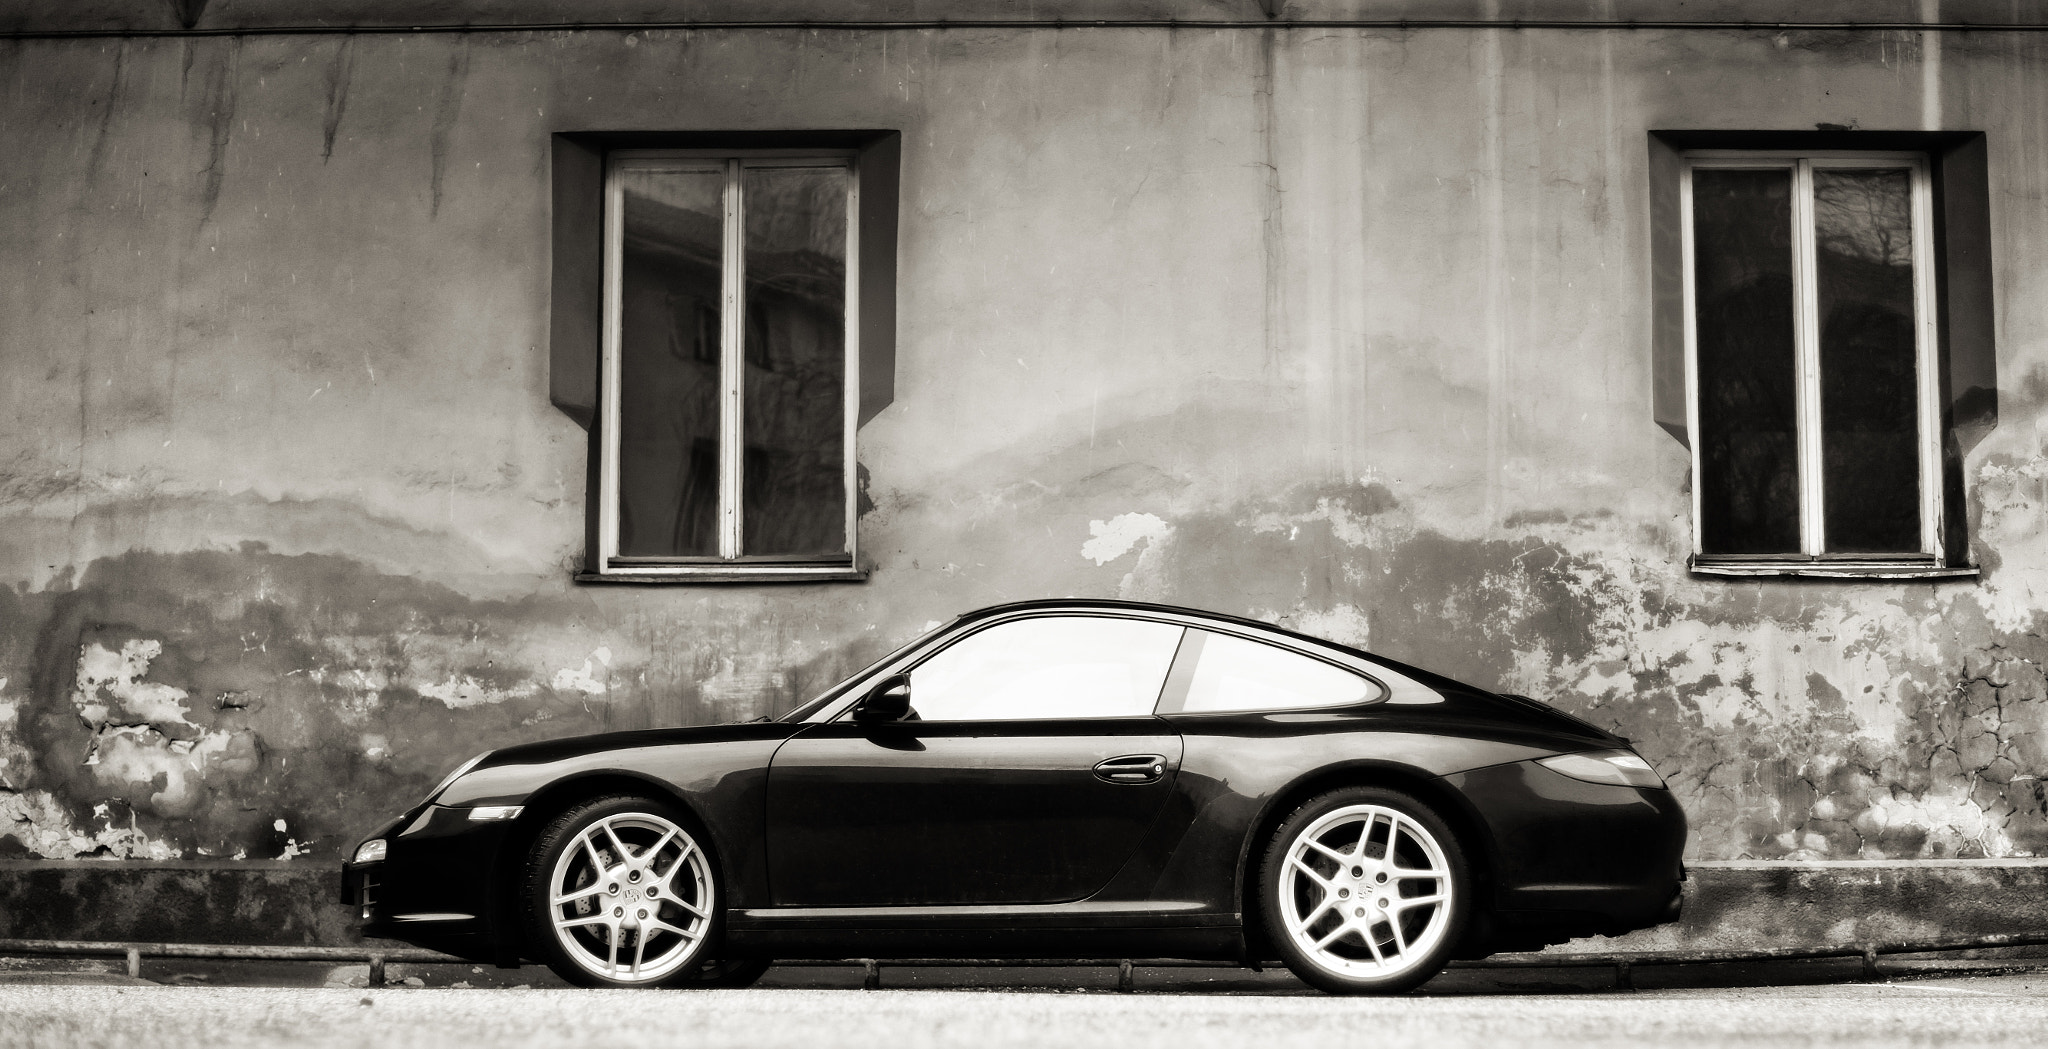 Photograph Porsche by Martin Dörsch on 500px